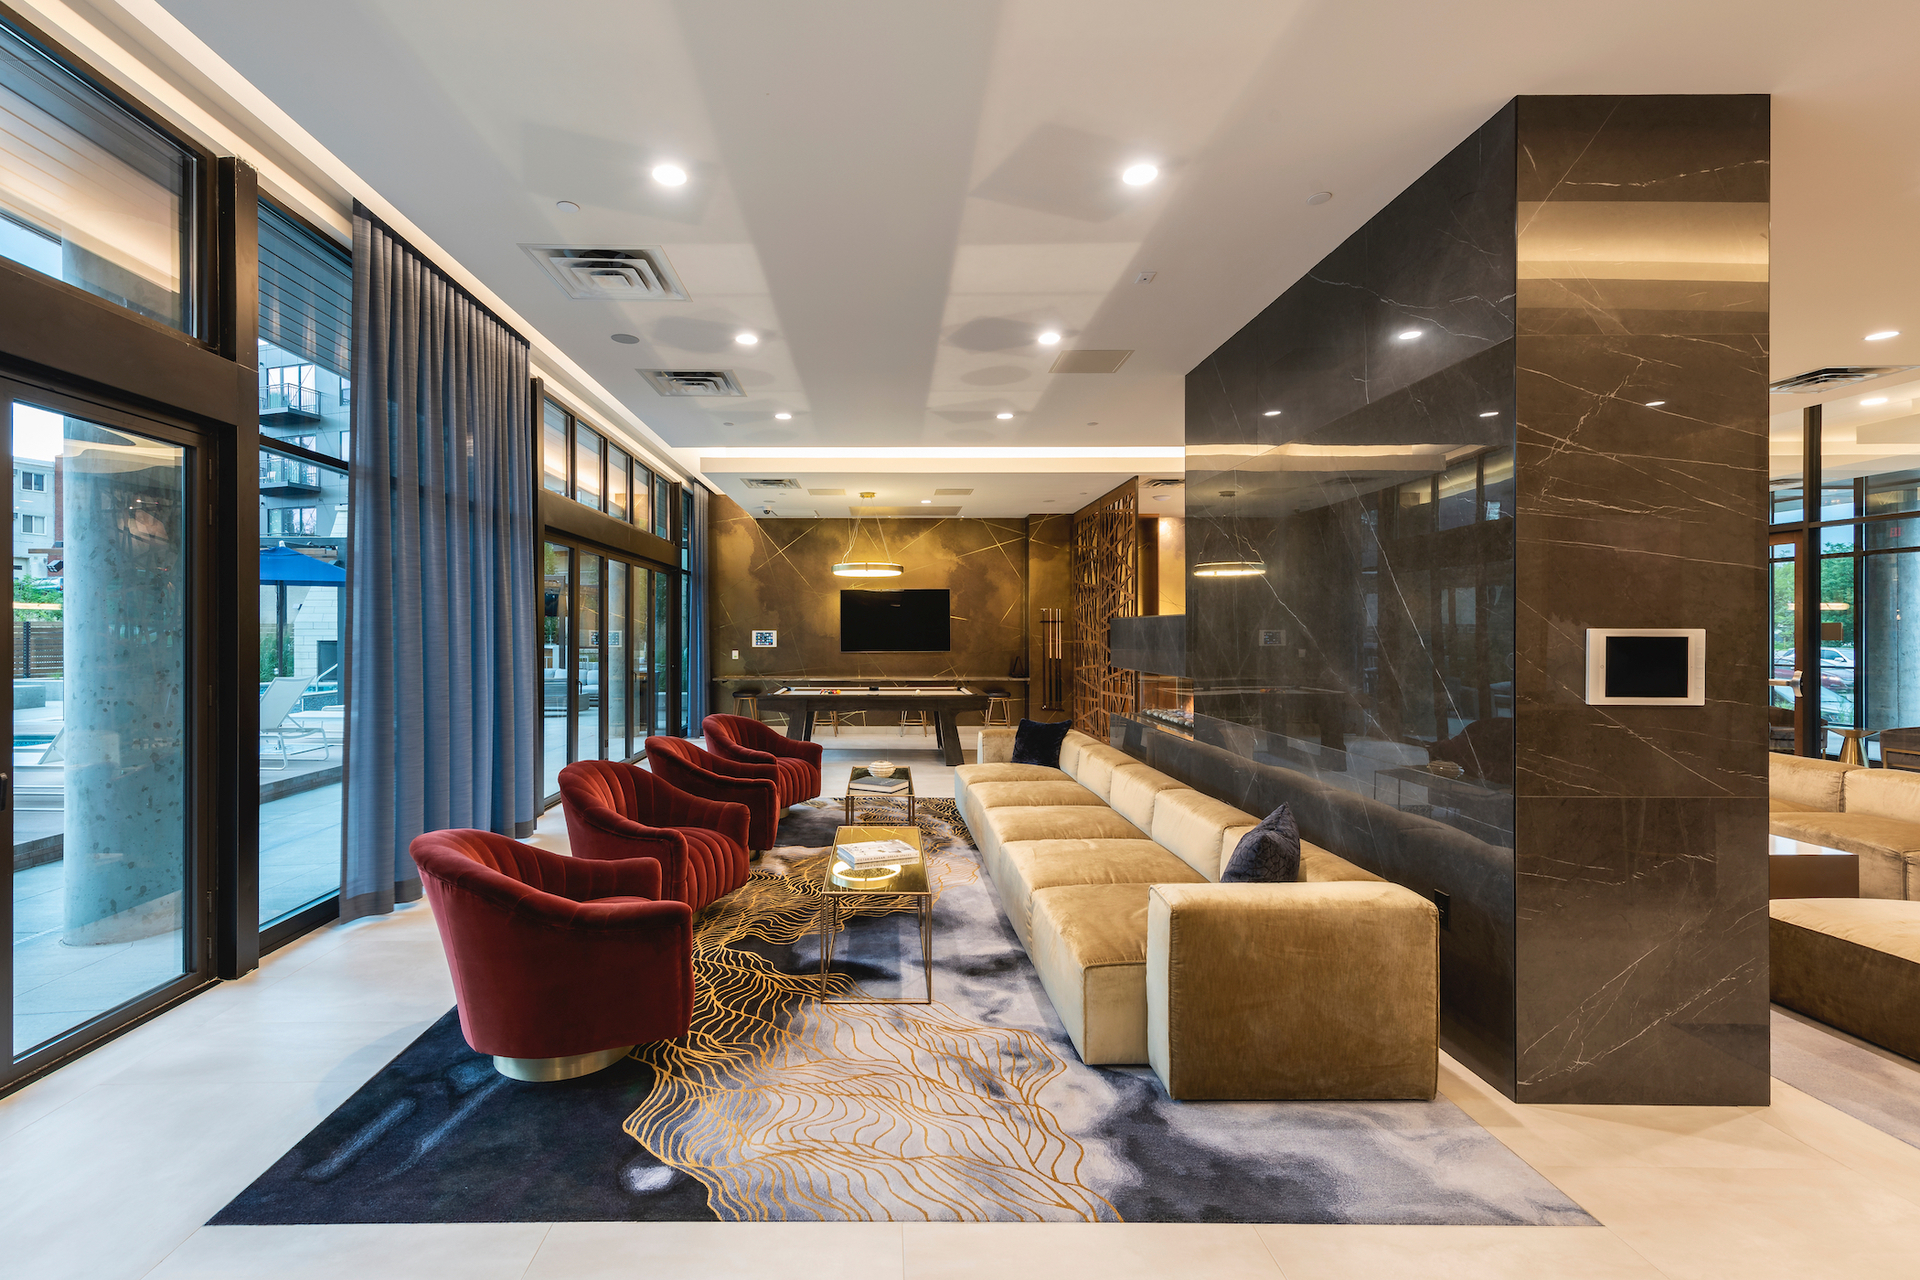 The eye-catching lounge area for guests to enjoy a round of pool or just gather together at Parkway 25 in St. Louis Park, MN, by DJR Architecture.